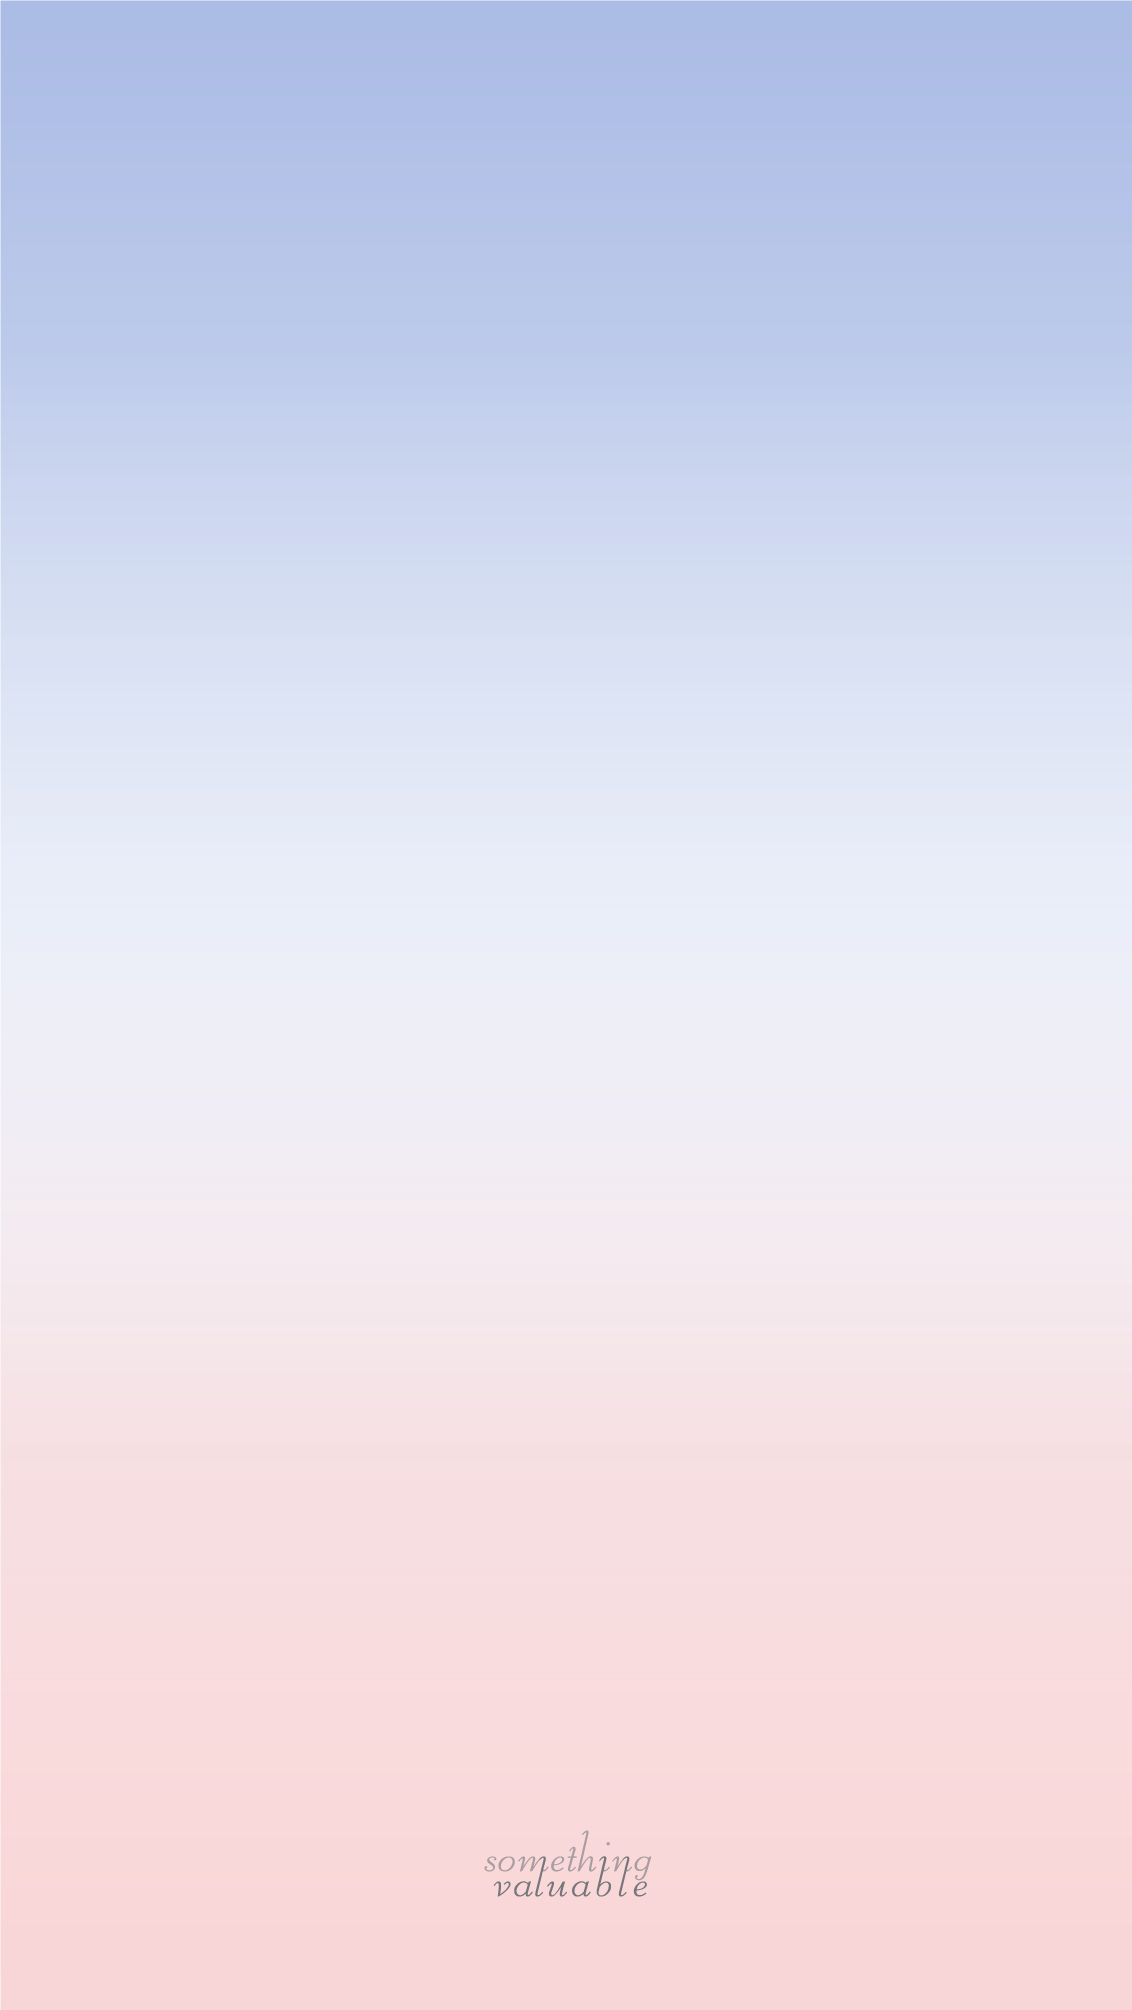 Must see Wallpaper Home Screen Aesthetic - 39b36c856d0d3c7f44a99909bfde6e6a  Pic_36264.jpg